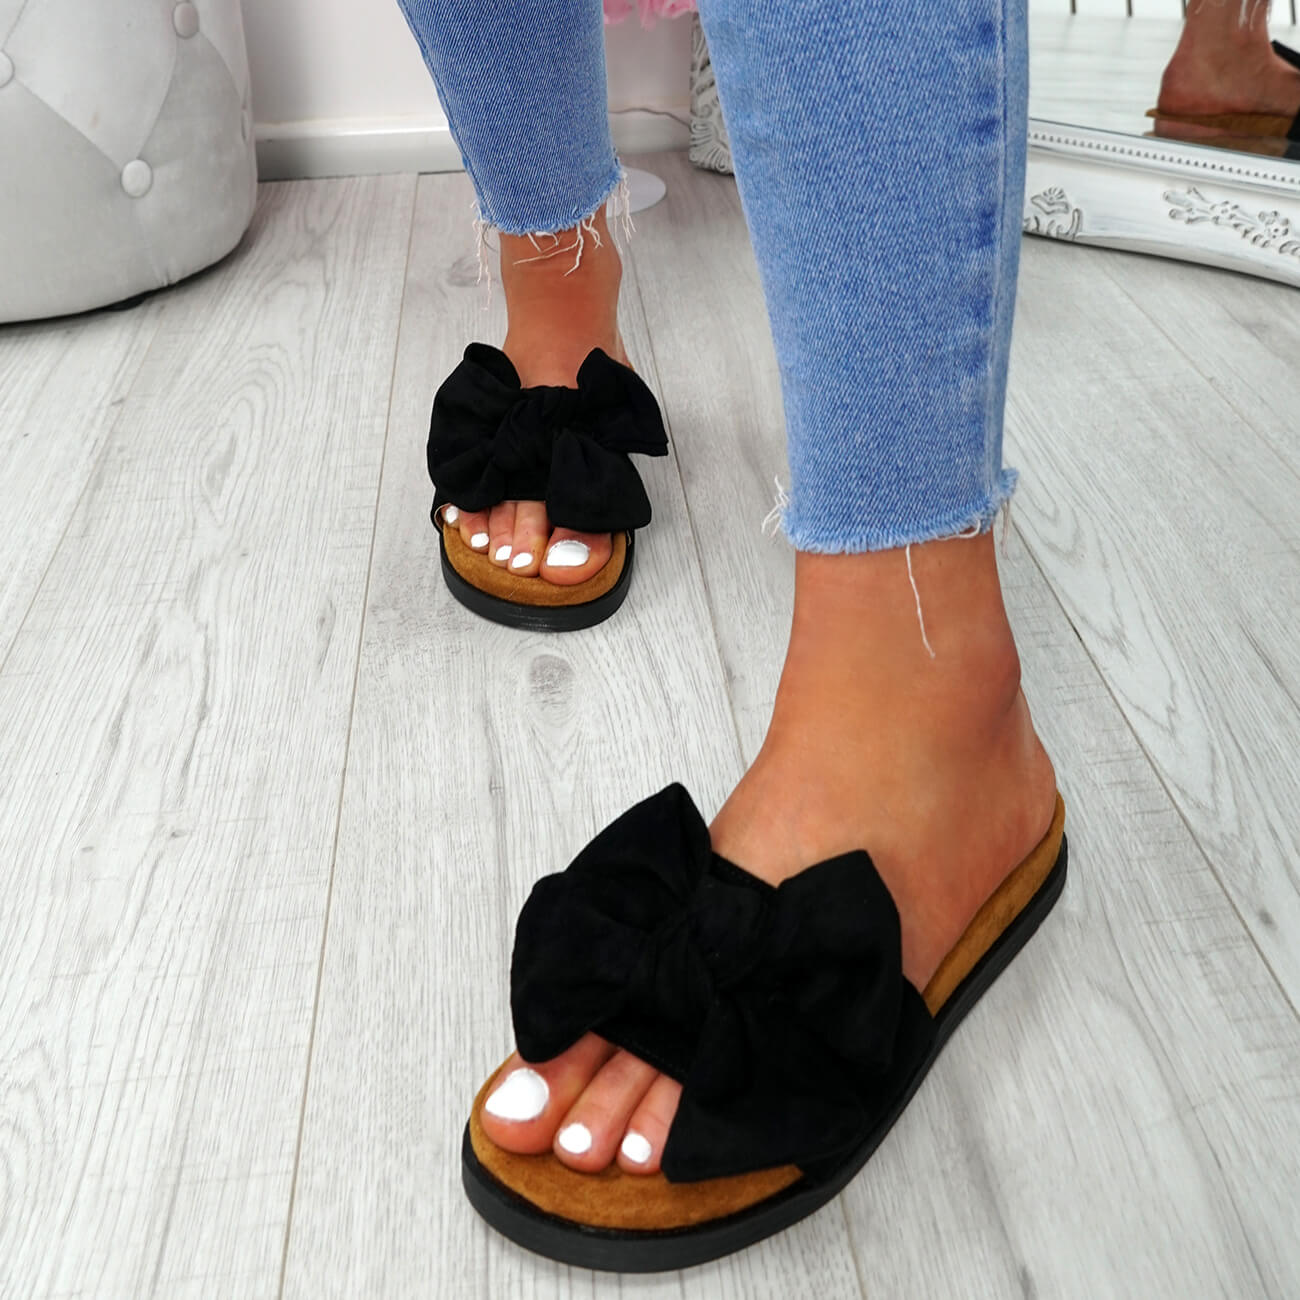 WOMENS-LADIES-FLAT-SANDALS-FRONT-BOW-COMFY-SUMMER-CASUAL-HOLIDAY-SHOES-SIZE-UK thumbnail 15